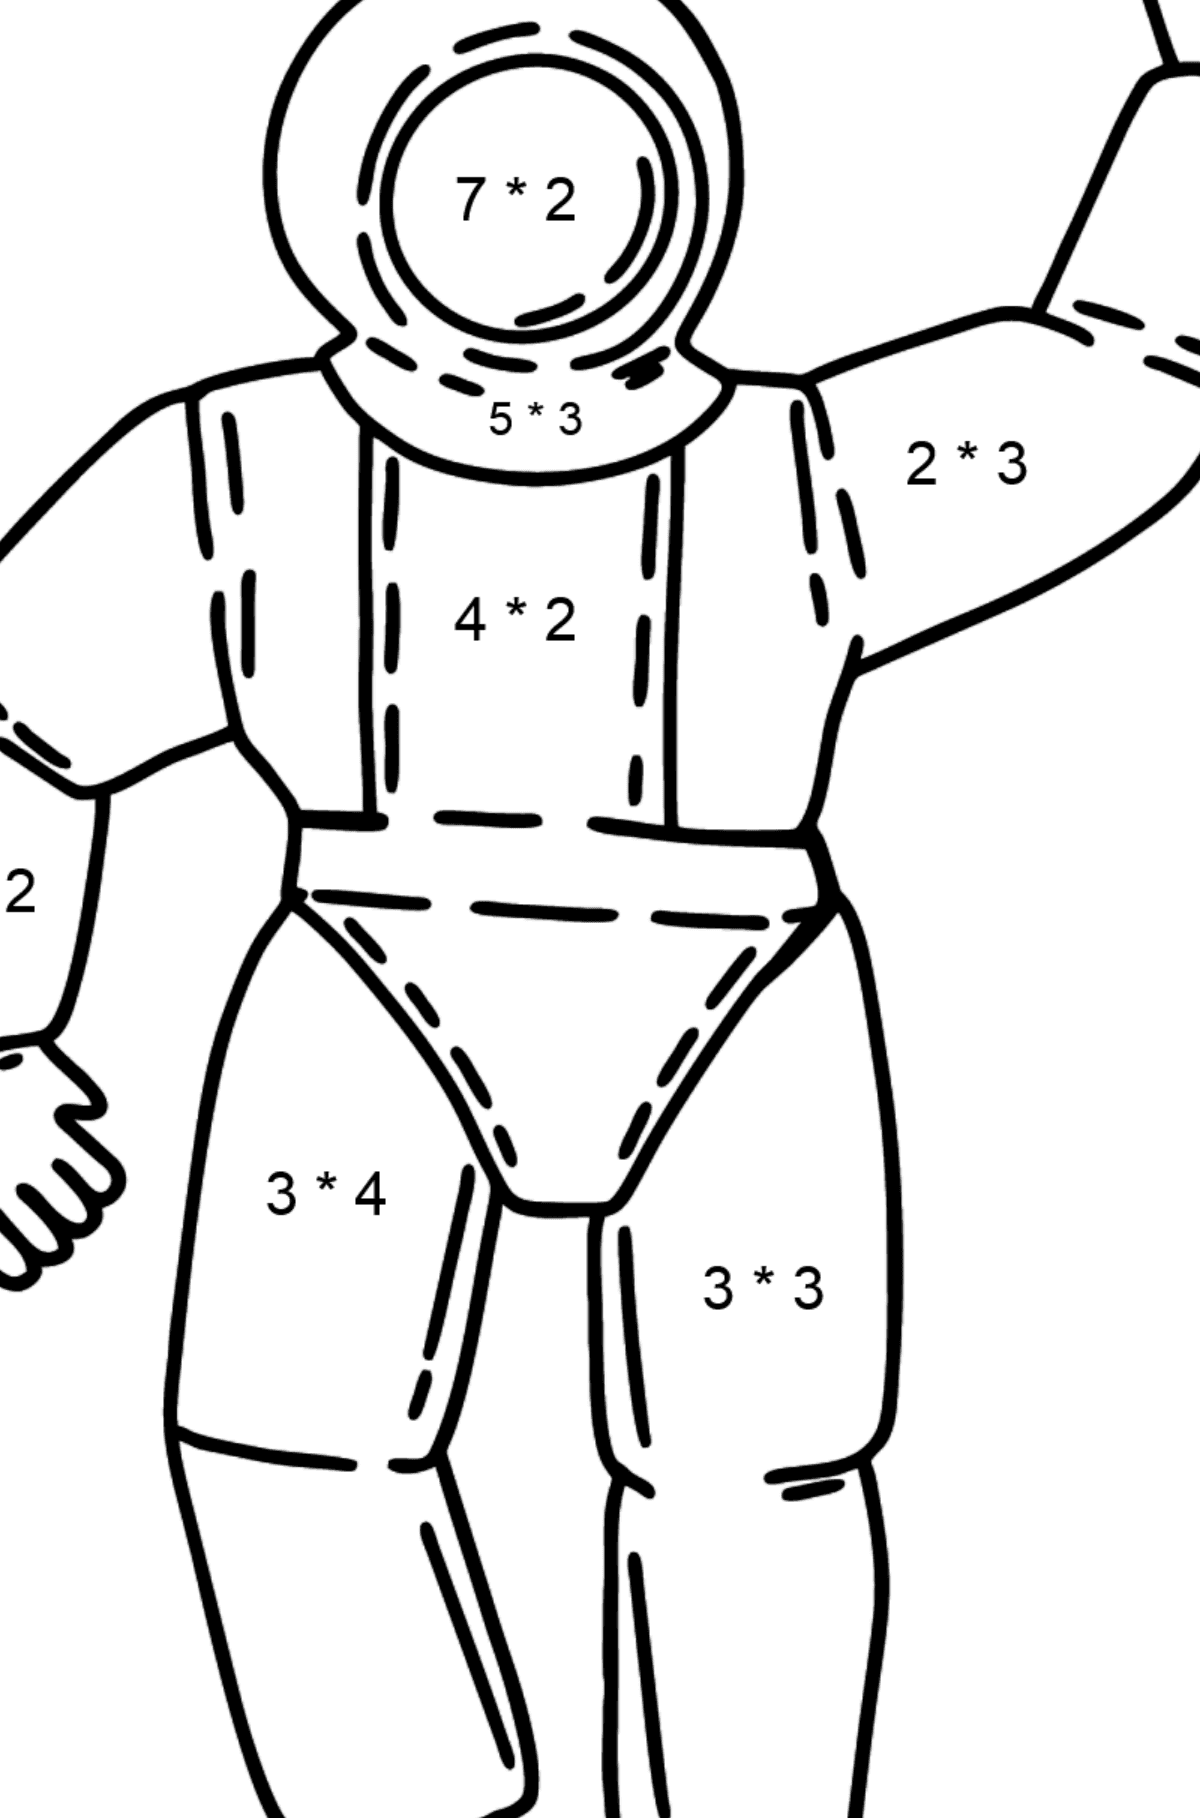 Astronaut coloring page - Math Coloring - Multiplication for Kids